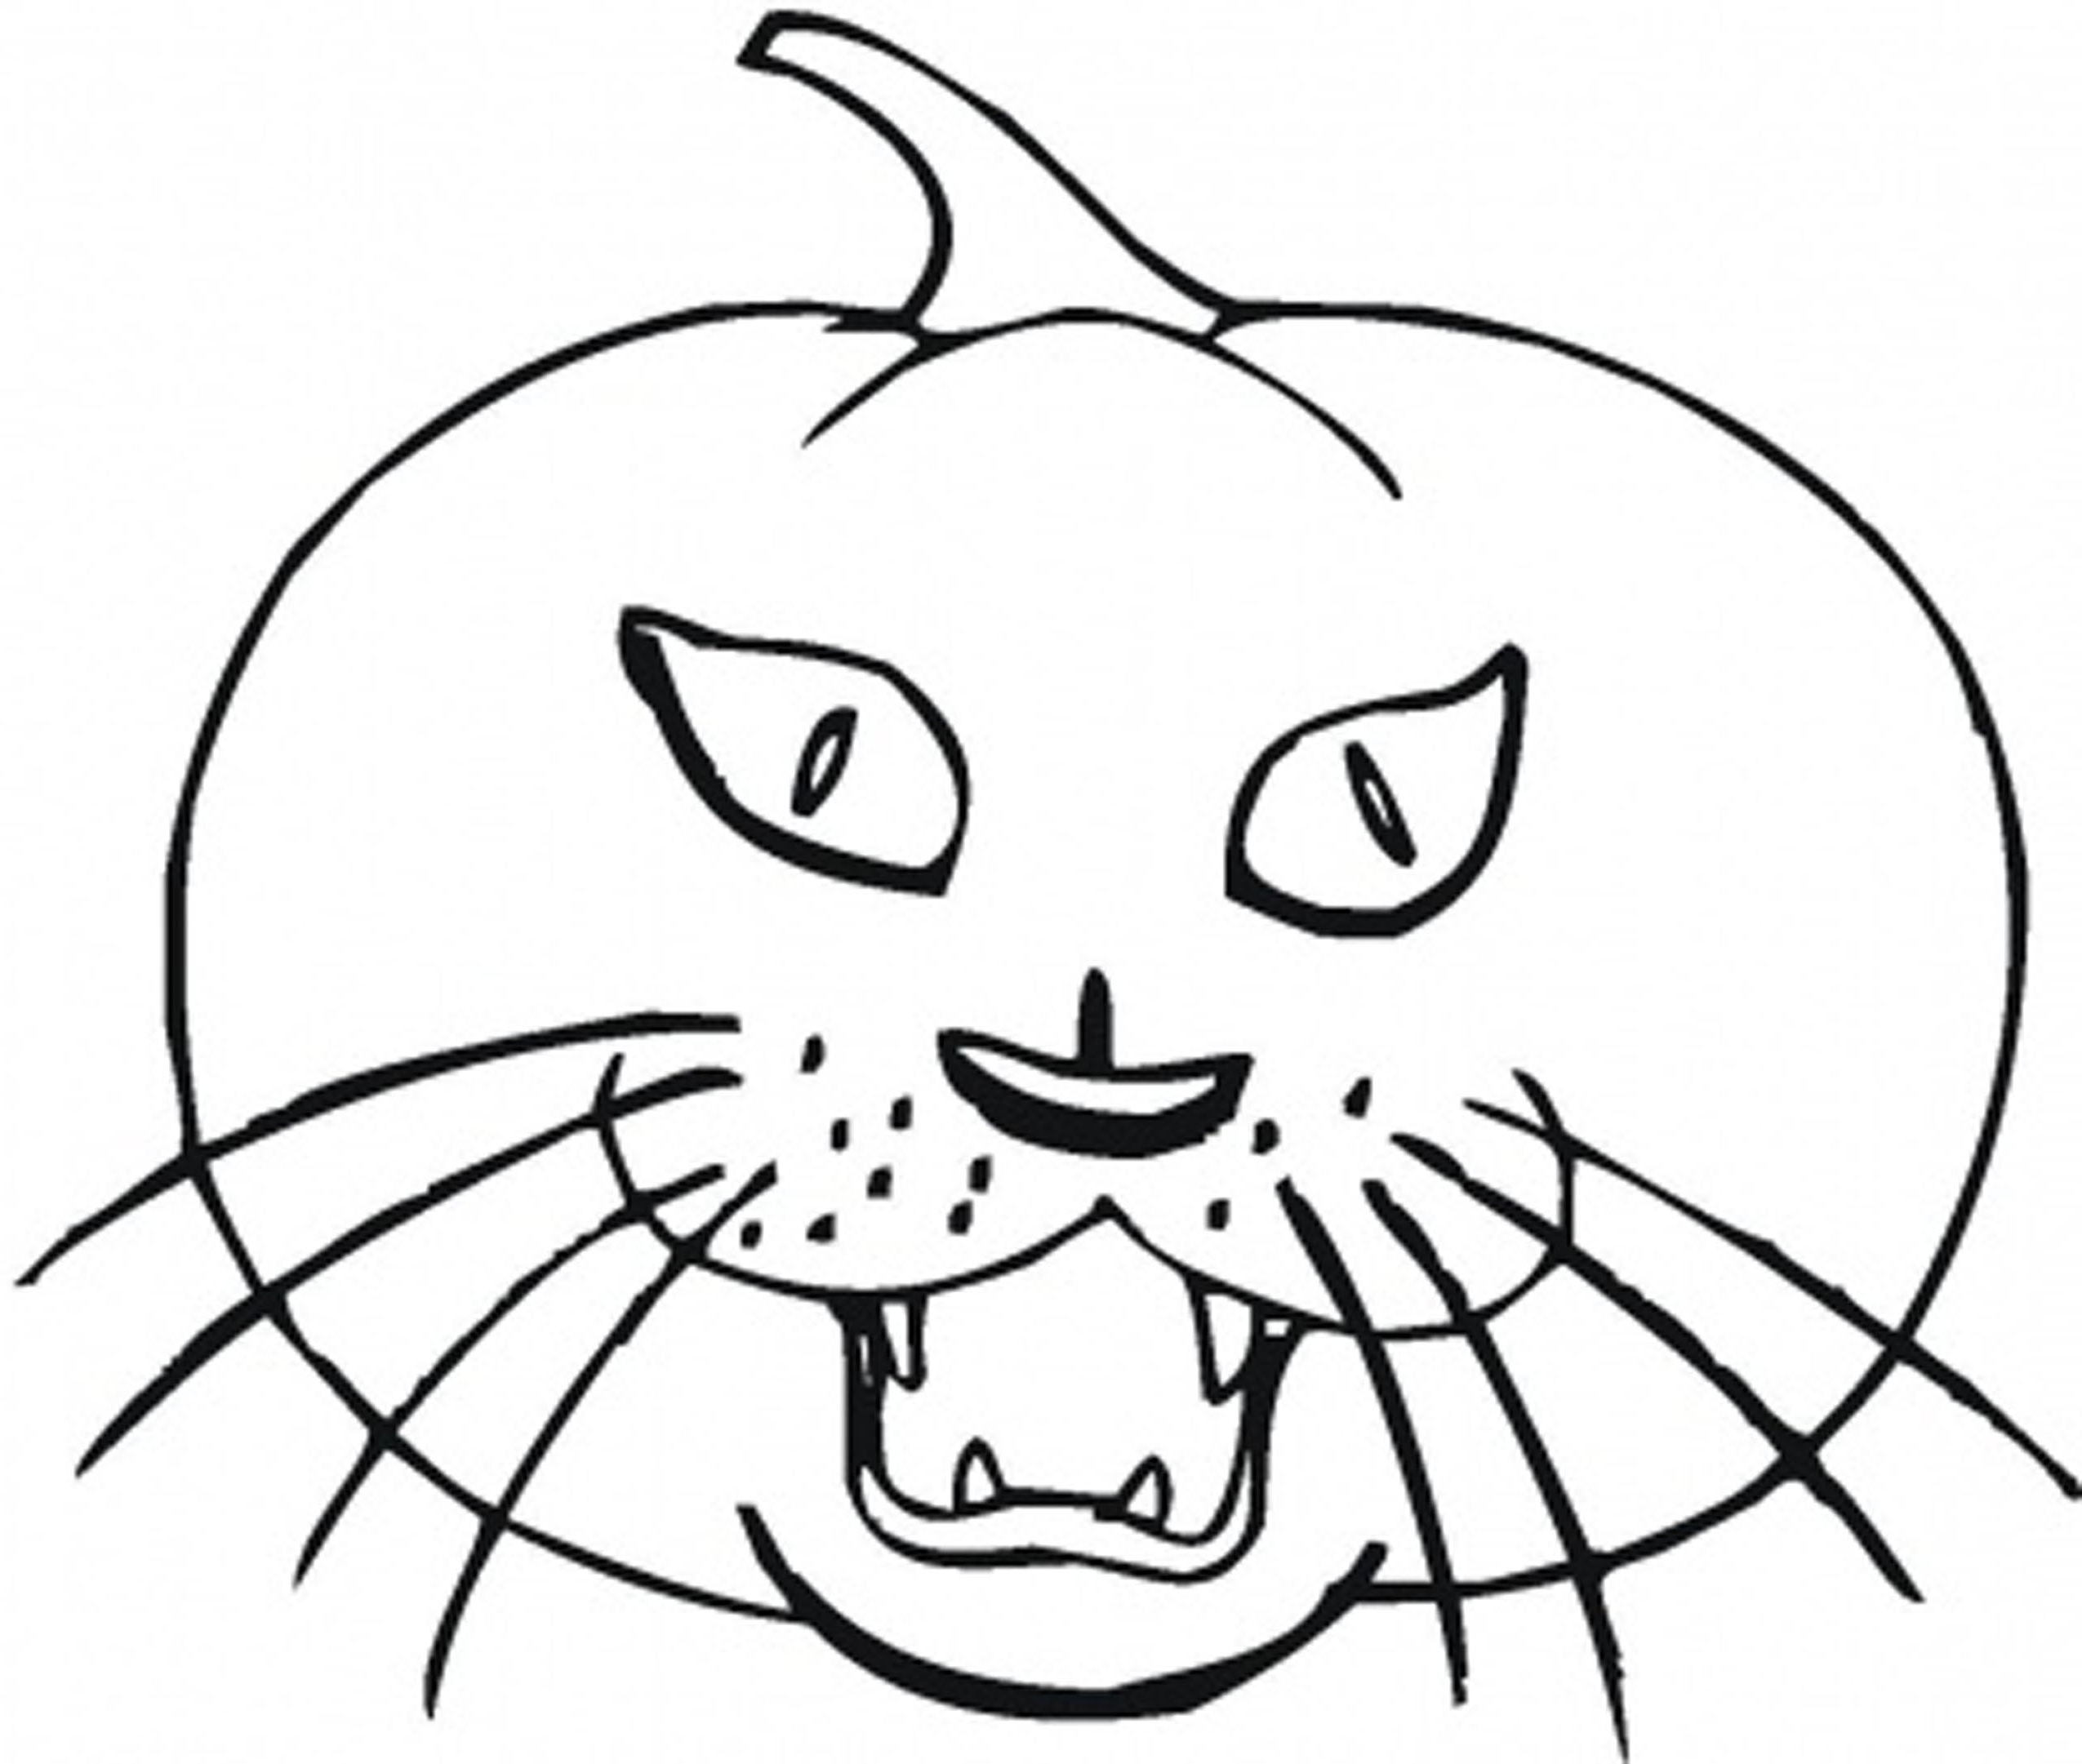 Scary Cat Drawing at GetDrawings.com | Free for personal use Scary ...